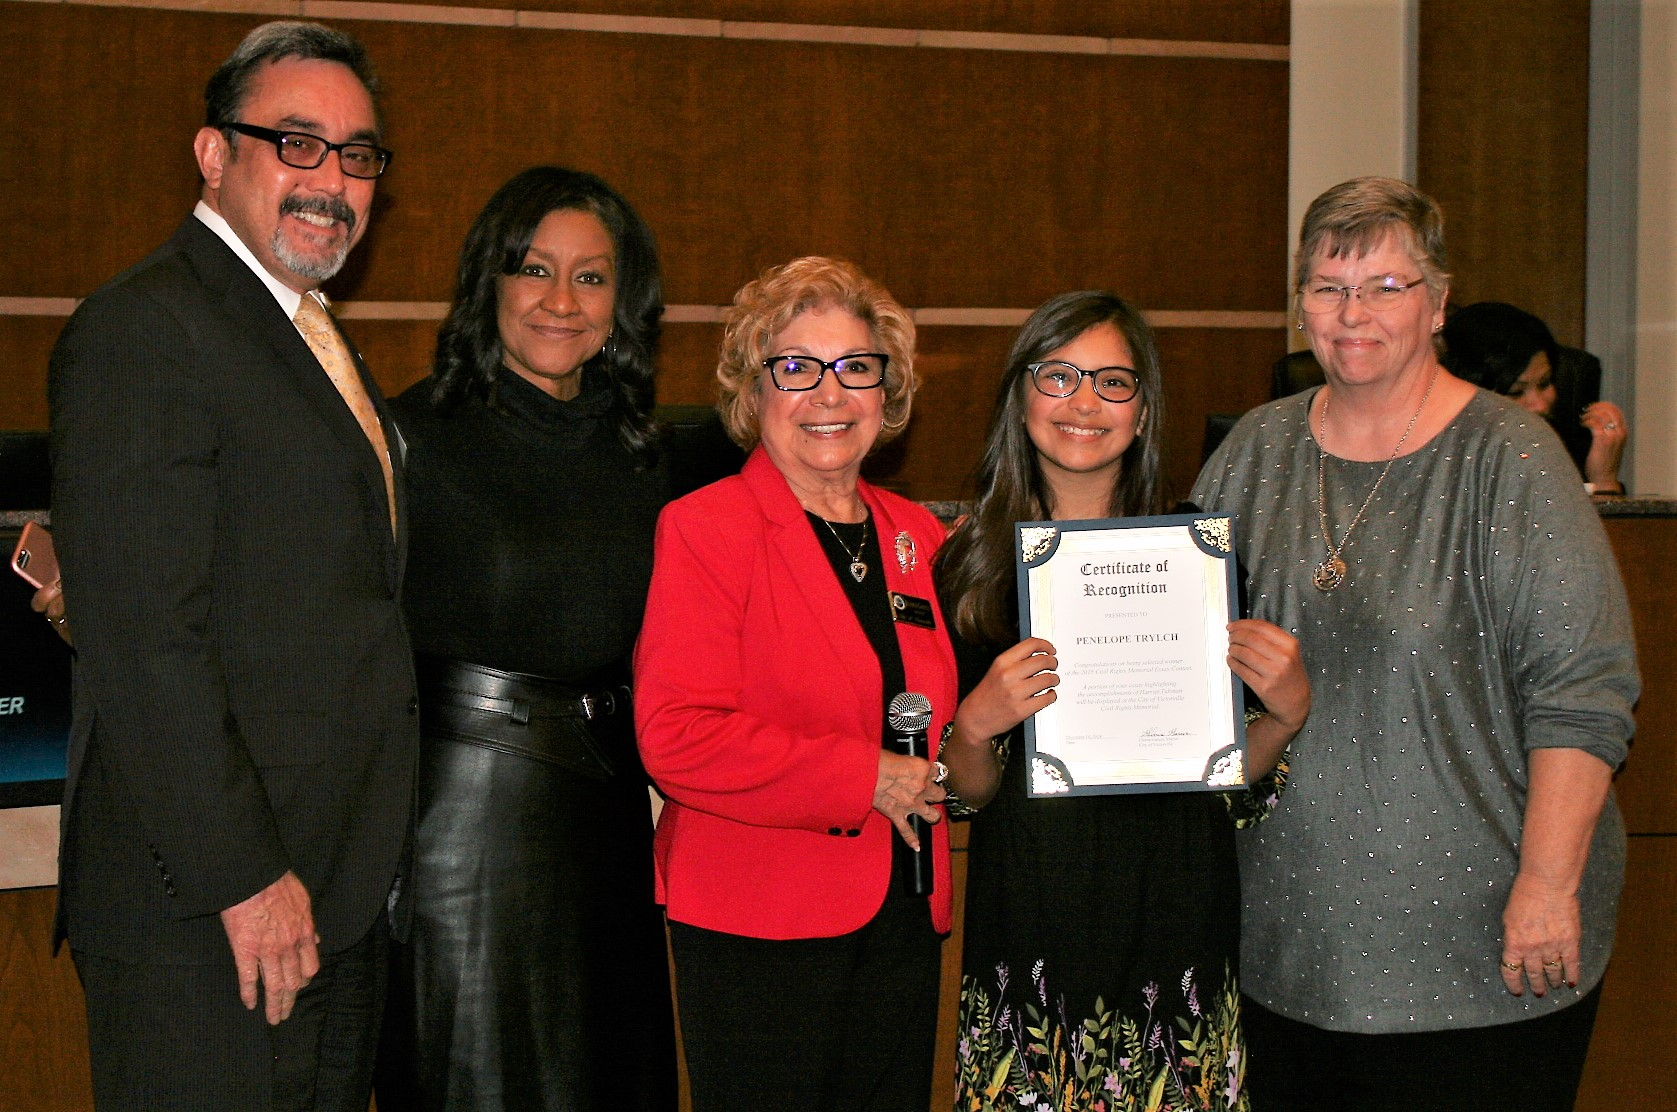 2018 Civil Rights Essay Winner - City Council Meeting Photo - 12-8-2018